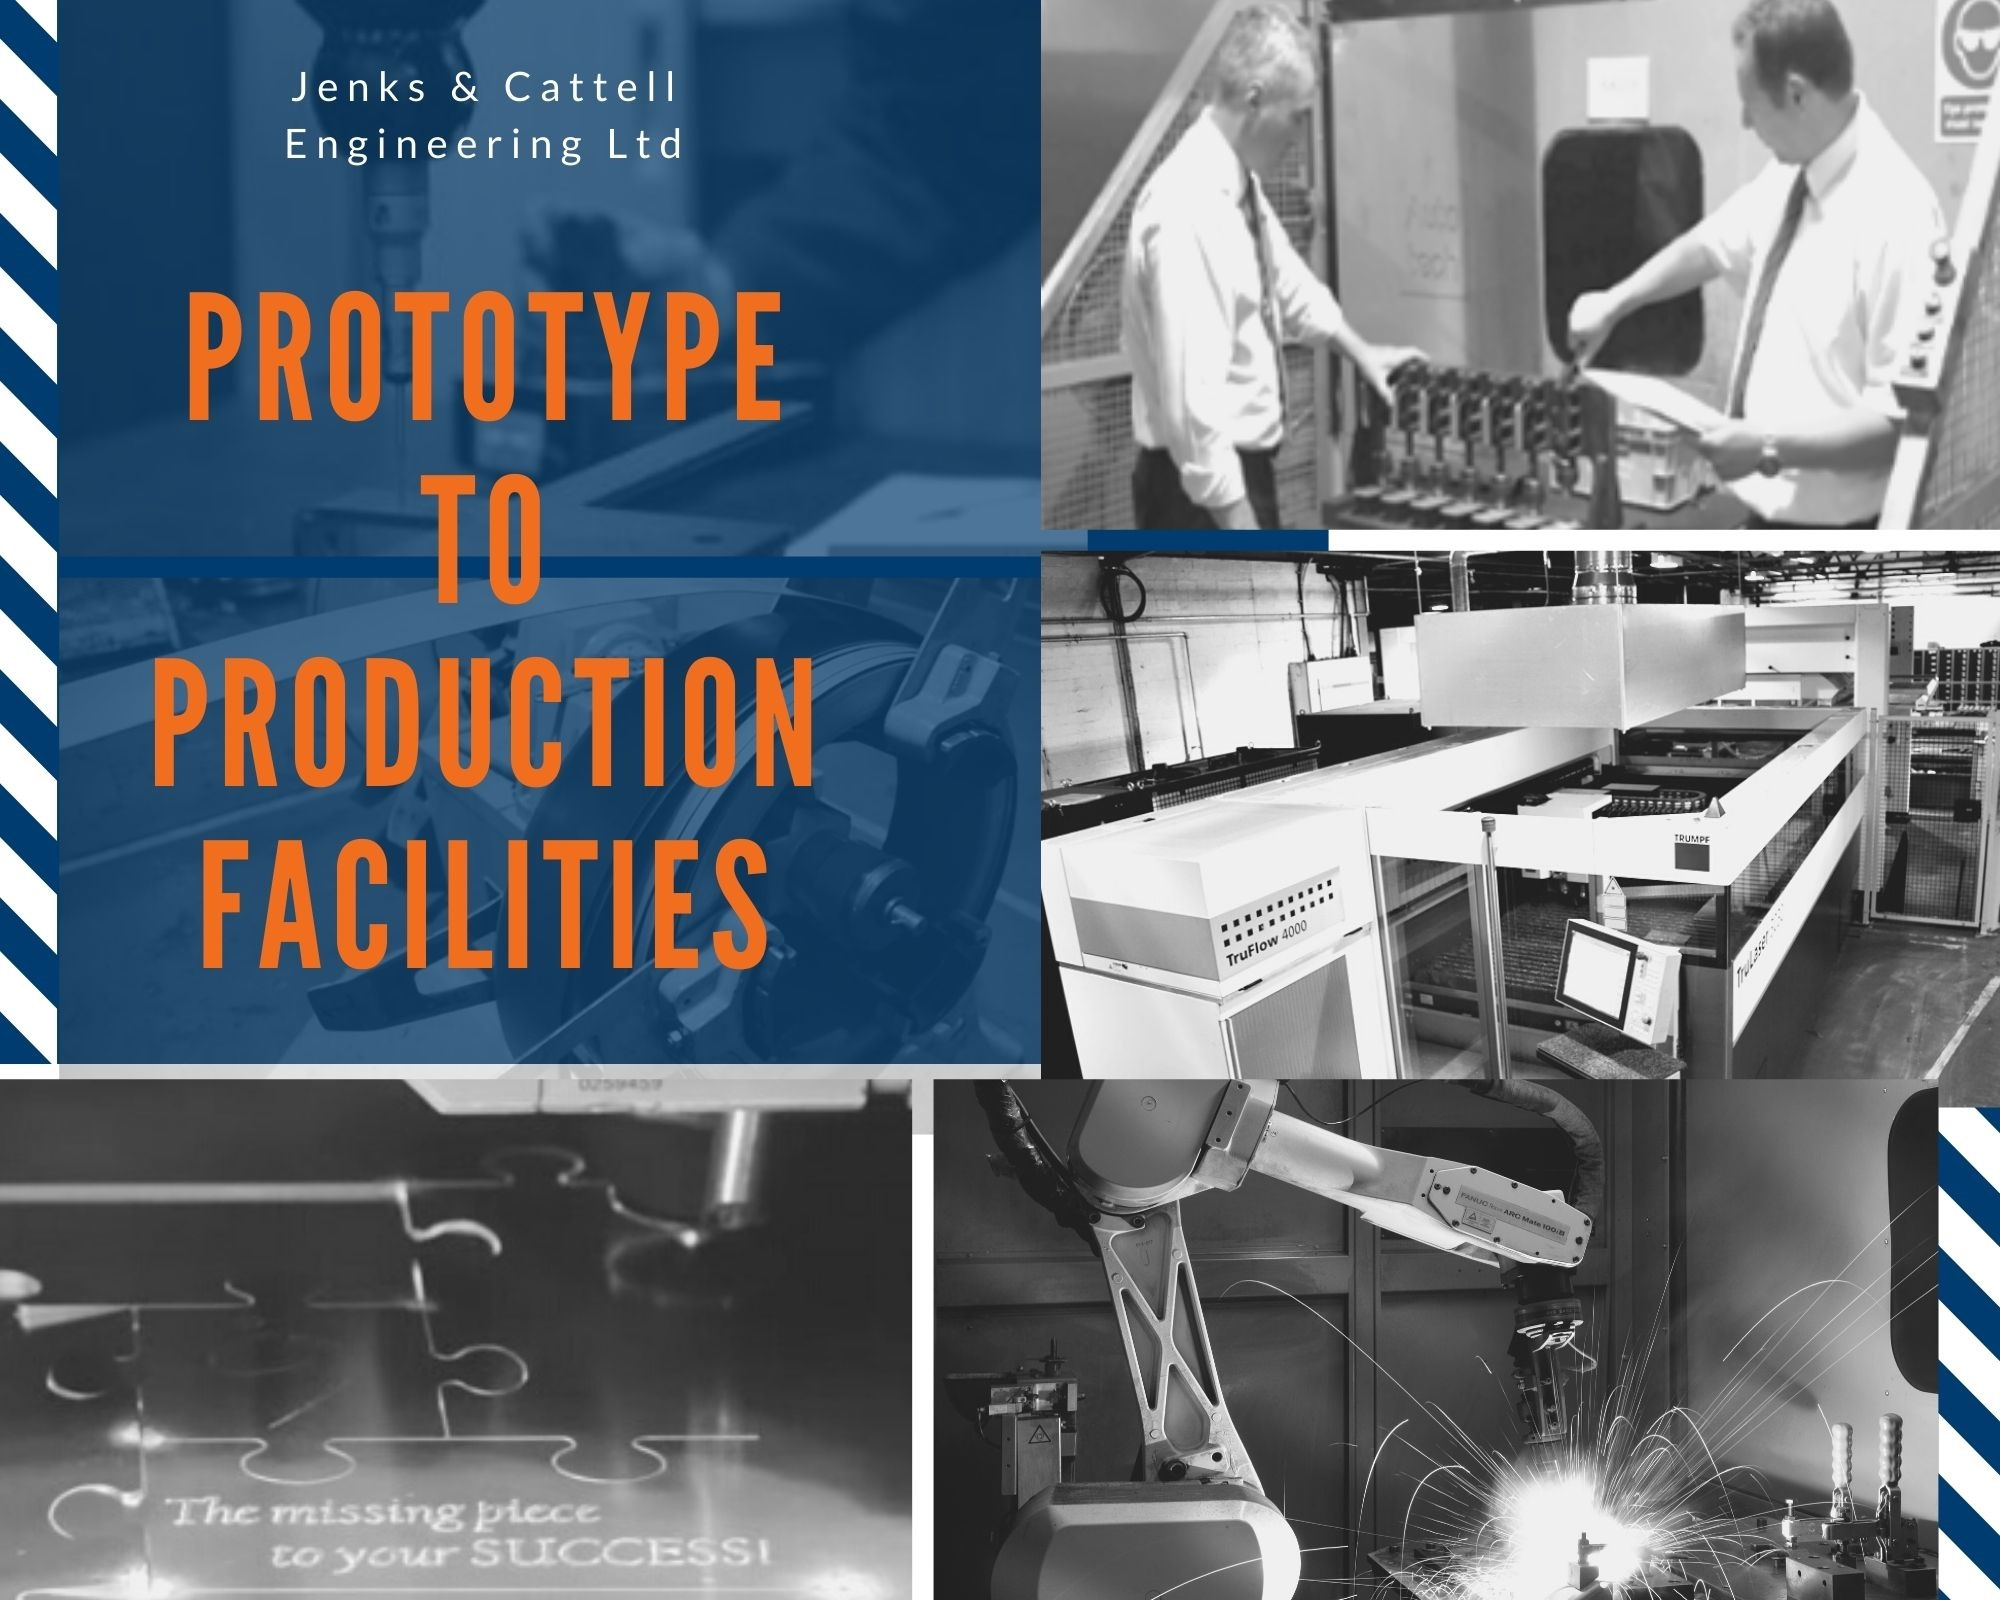 Jenks & Cattell Supporting Prototypes to Production Volumes